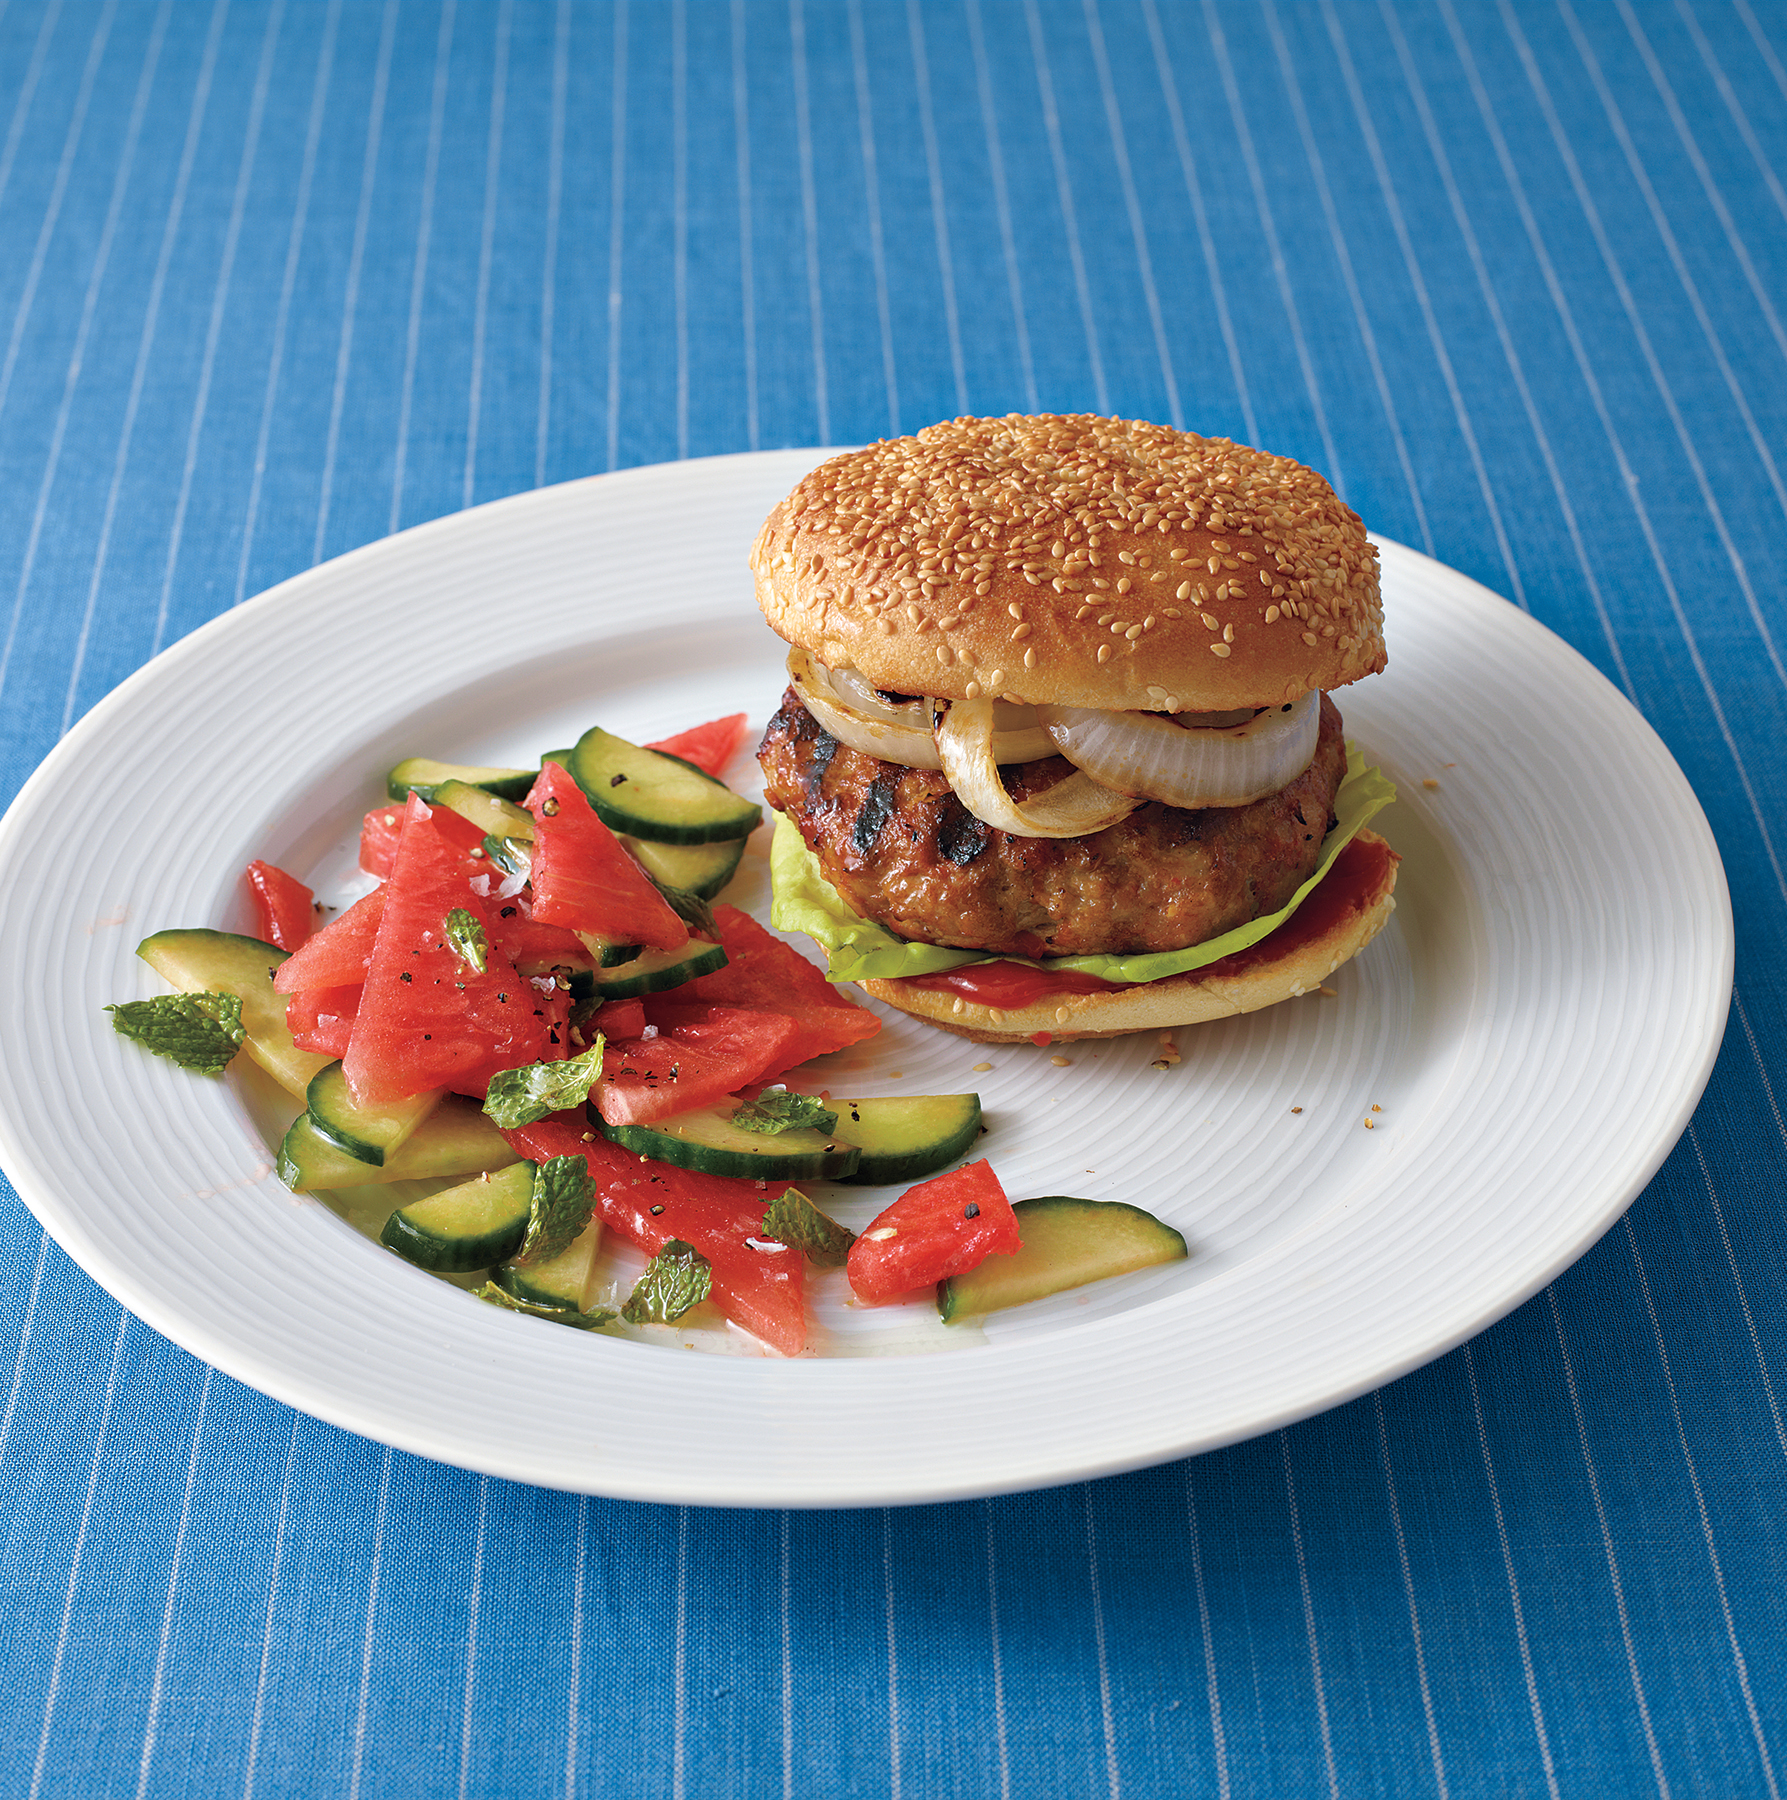 Asian Pork Burgers With Minted Watermelon